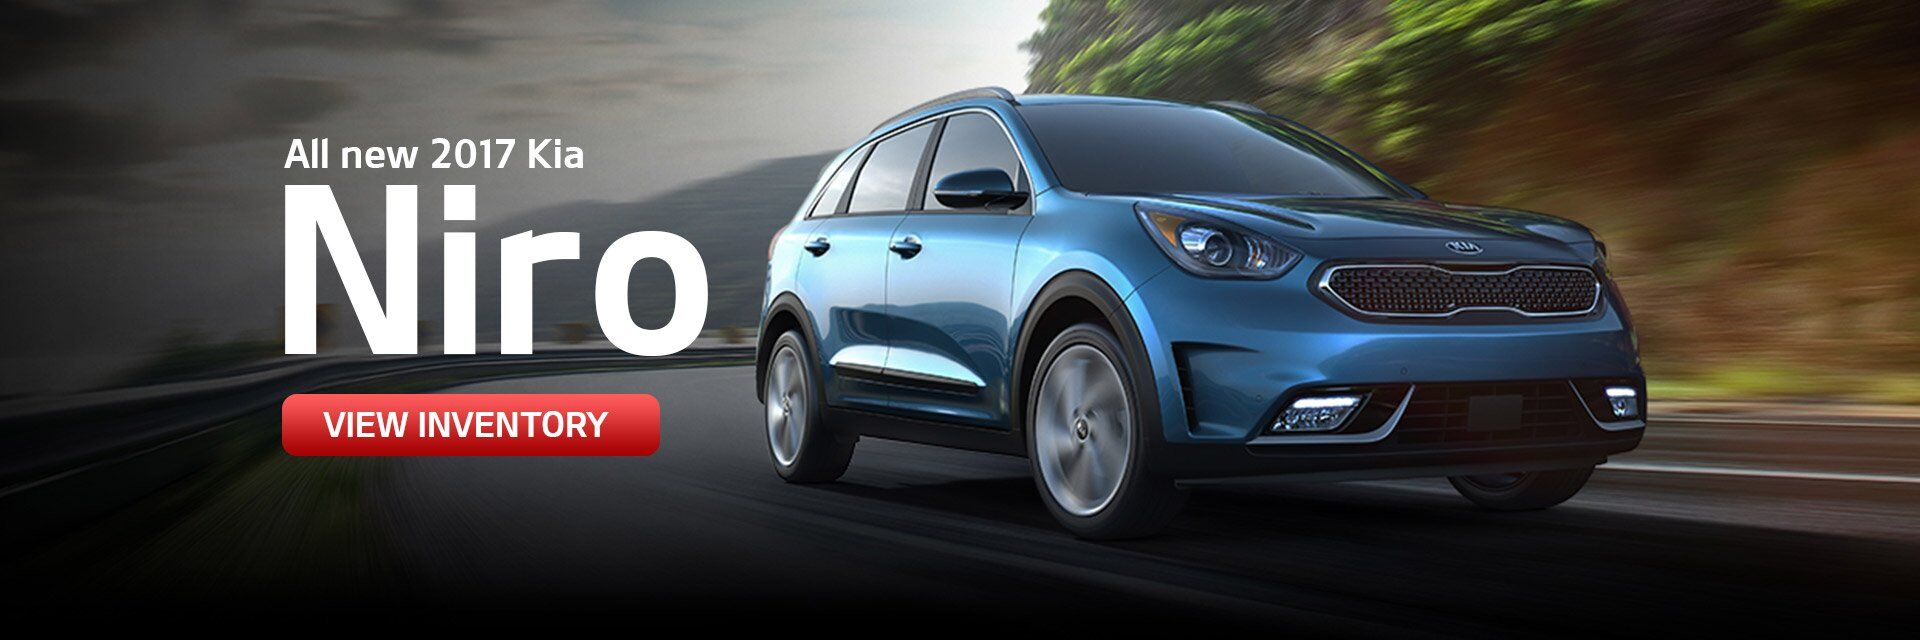 The Kia Niro has arrived